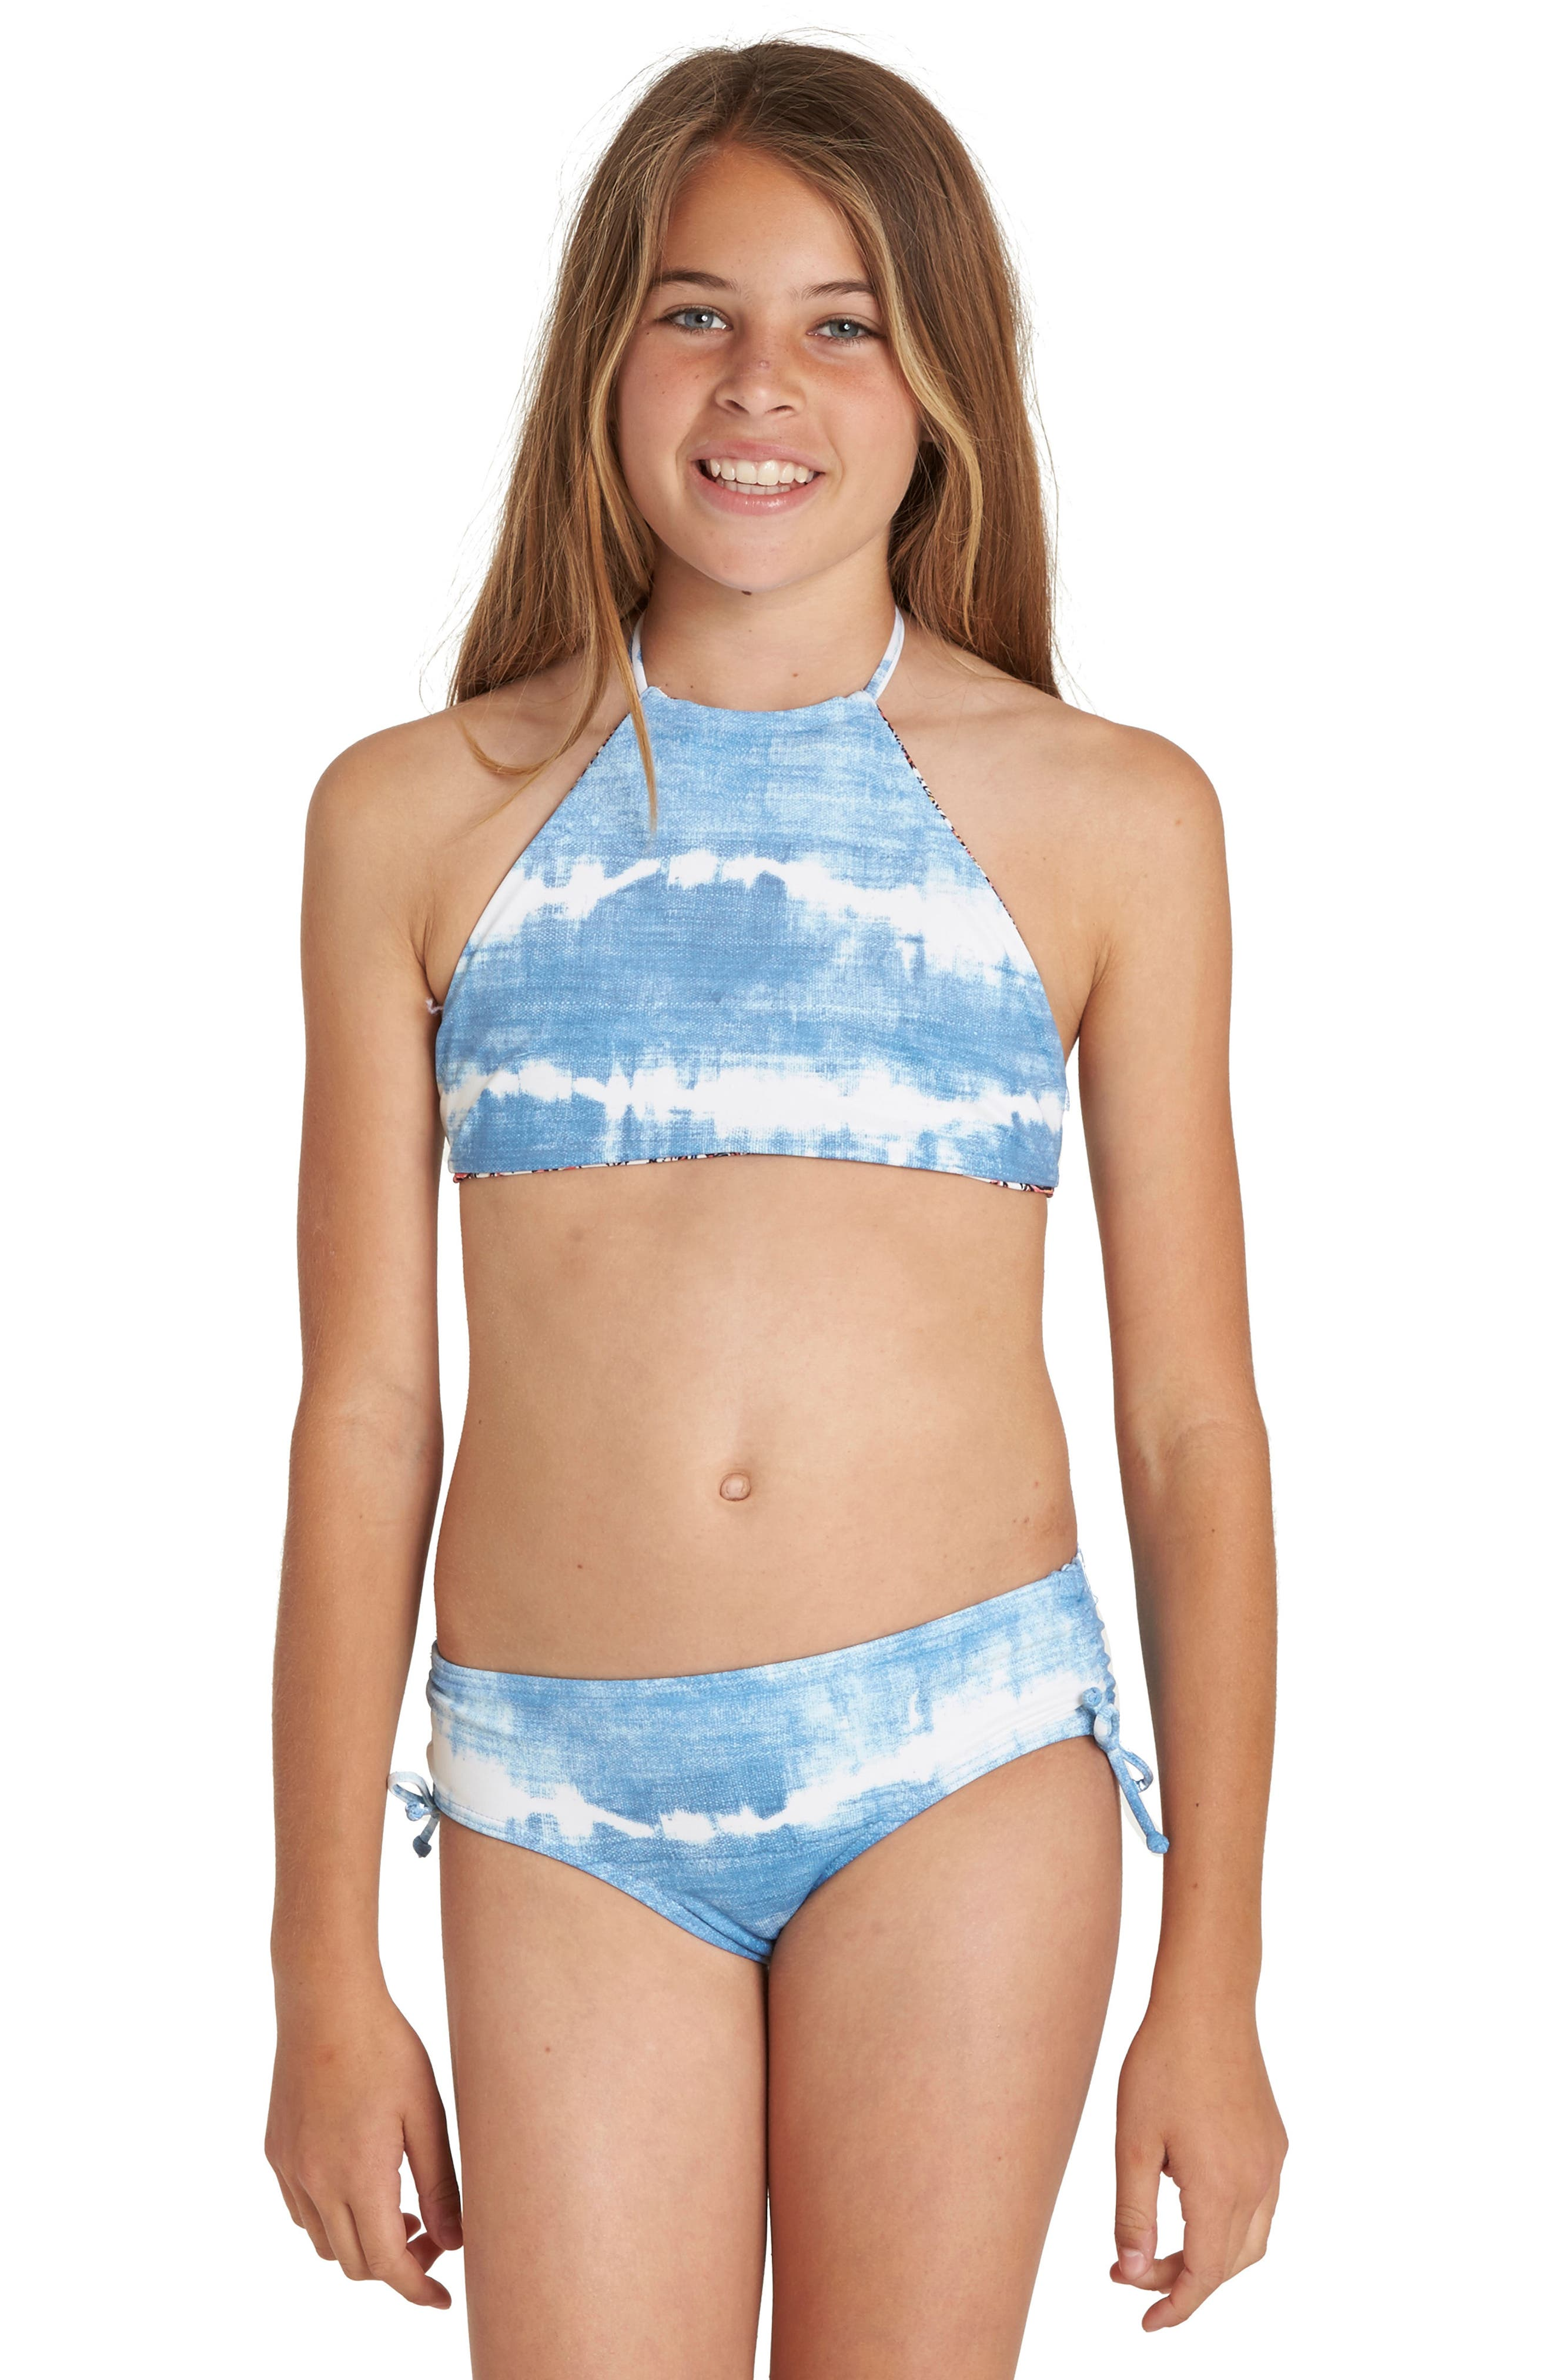 Lil Bliss Two-Piece Halter Swimsuit,                             Alternate thumbnail 2, color,                             Seashell